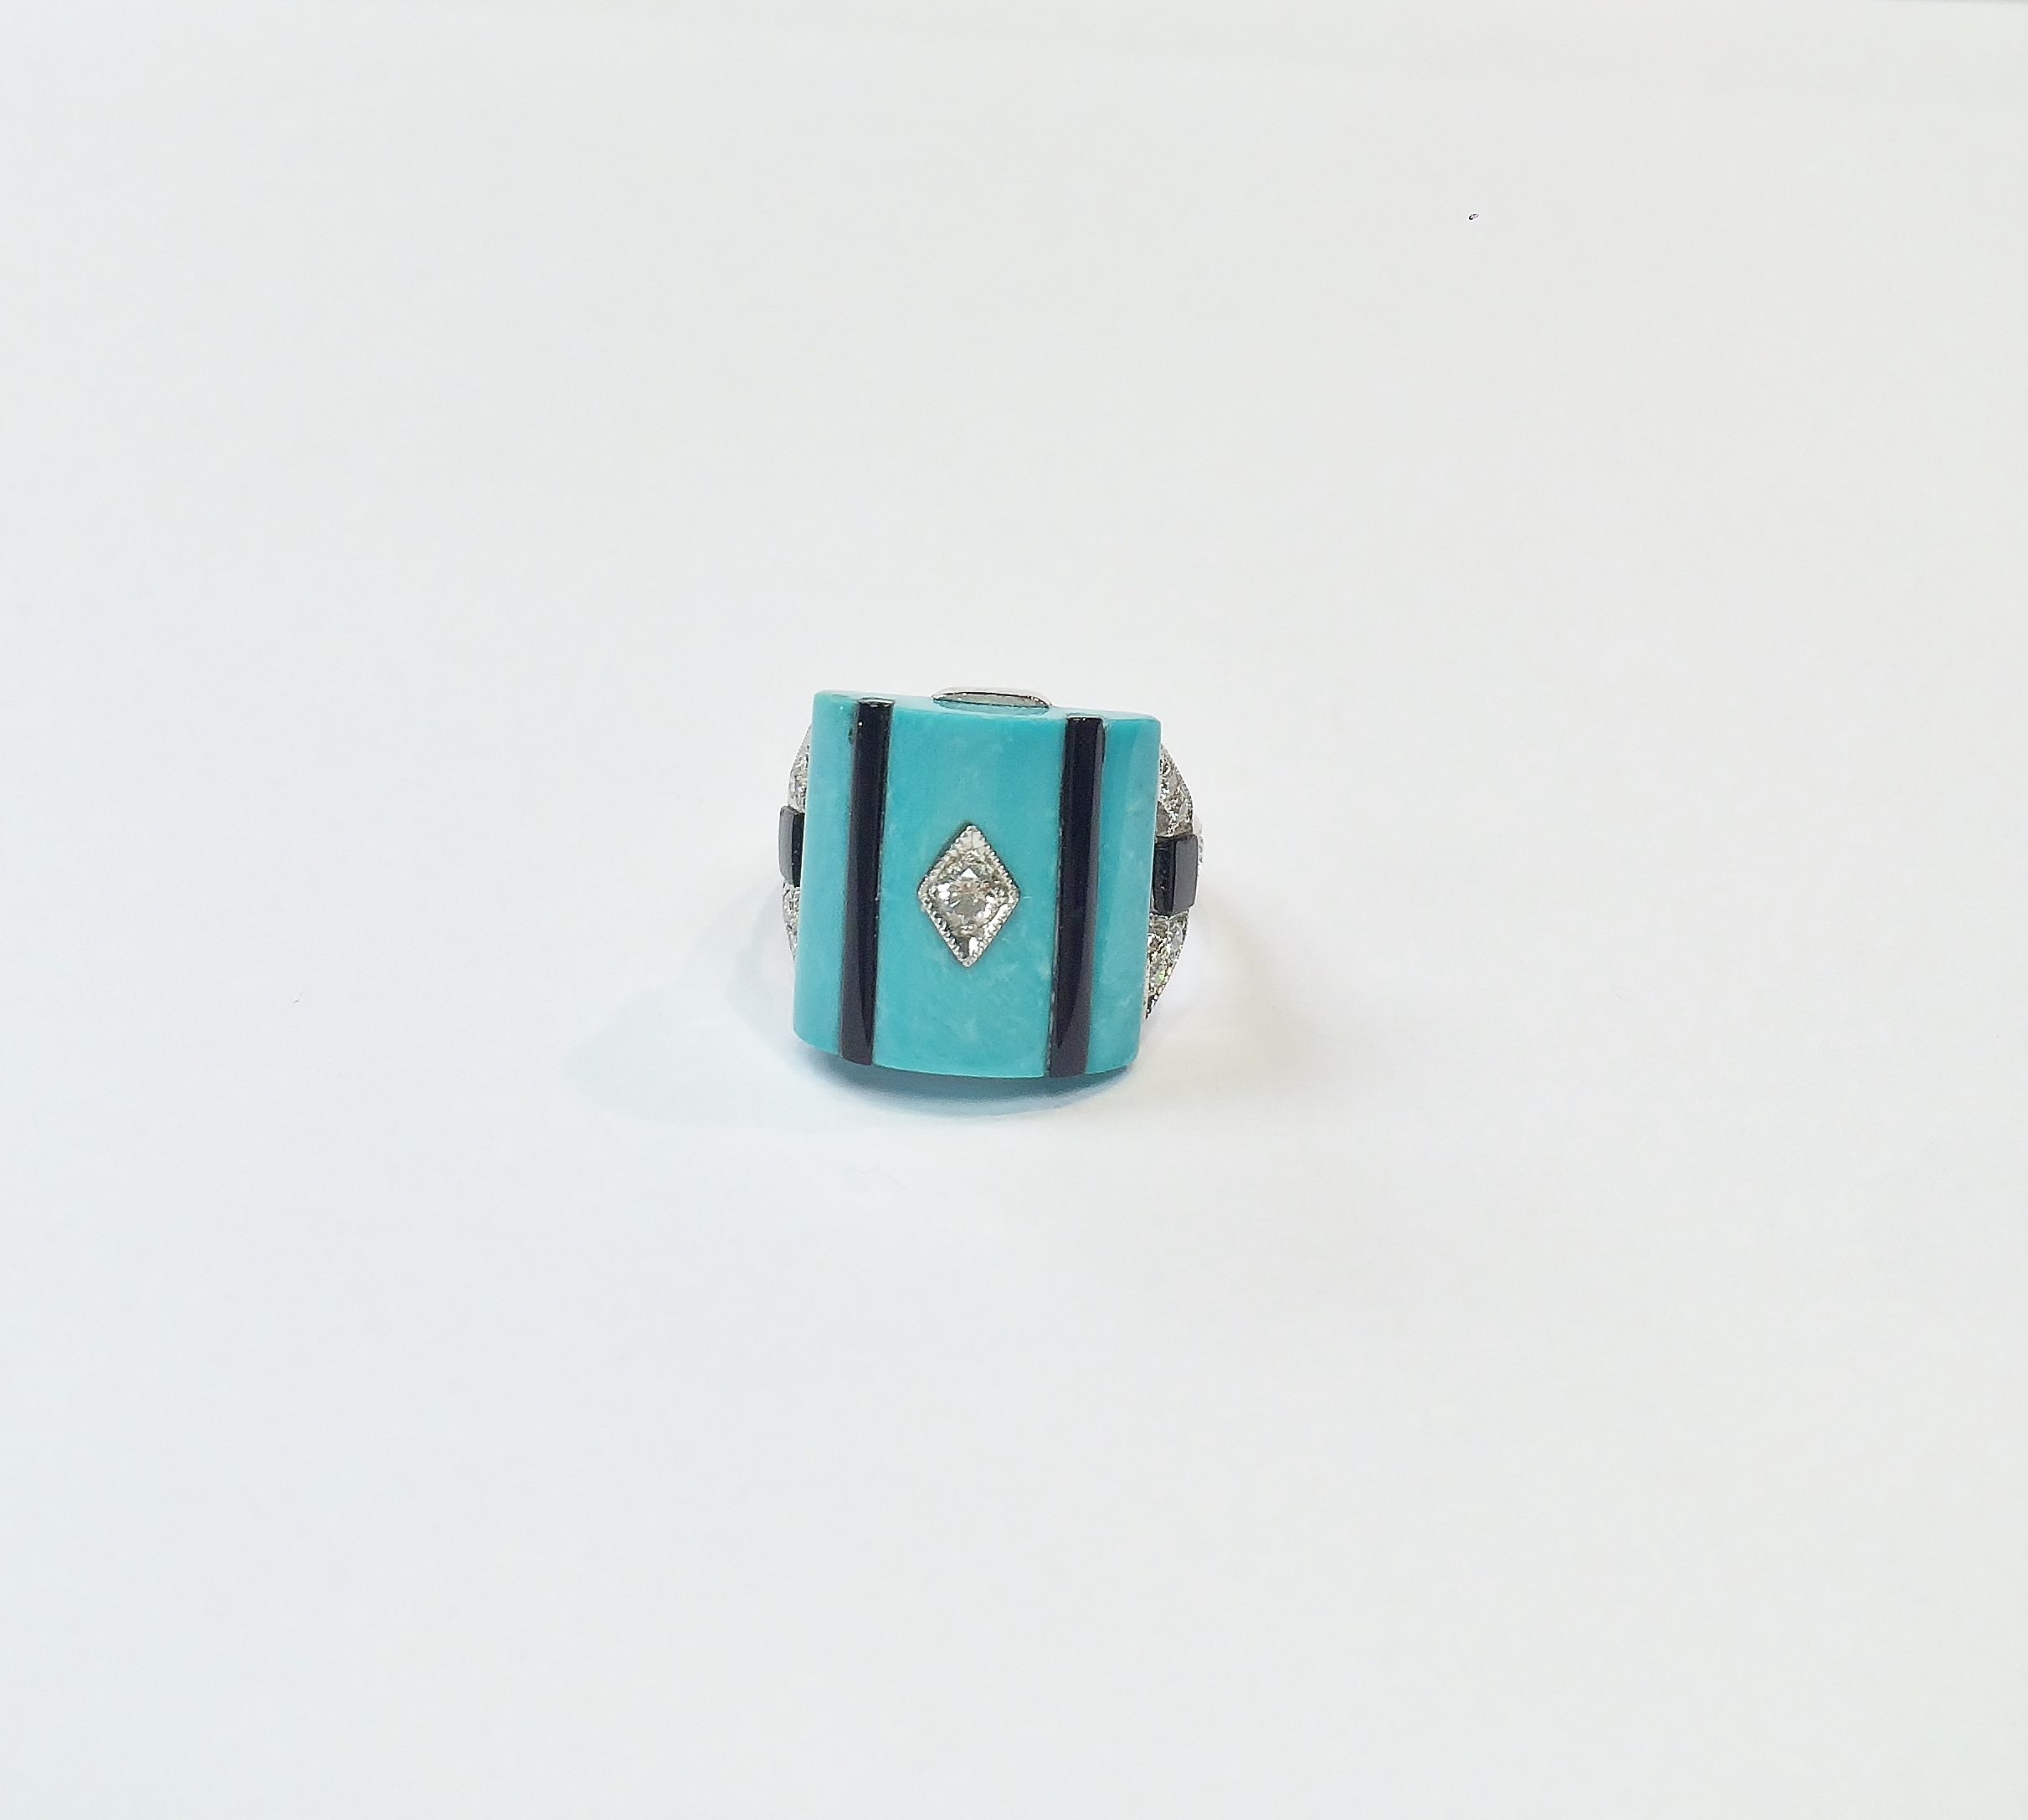 Antique Style Turquoise Diamond Ring